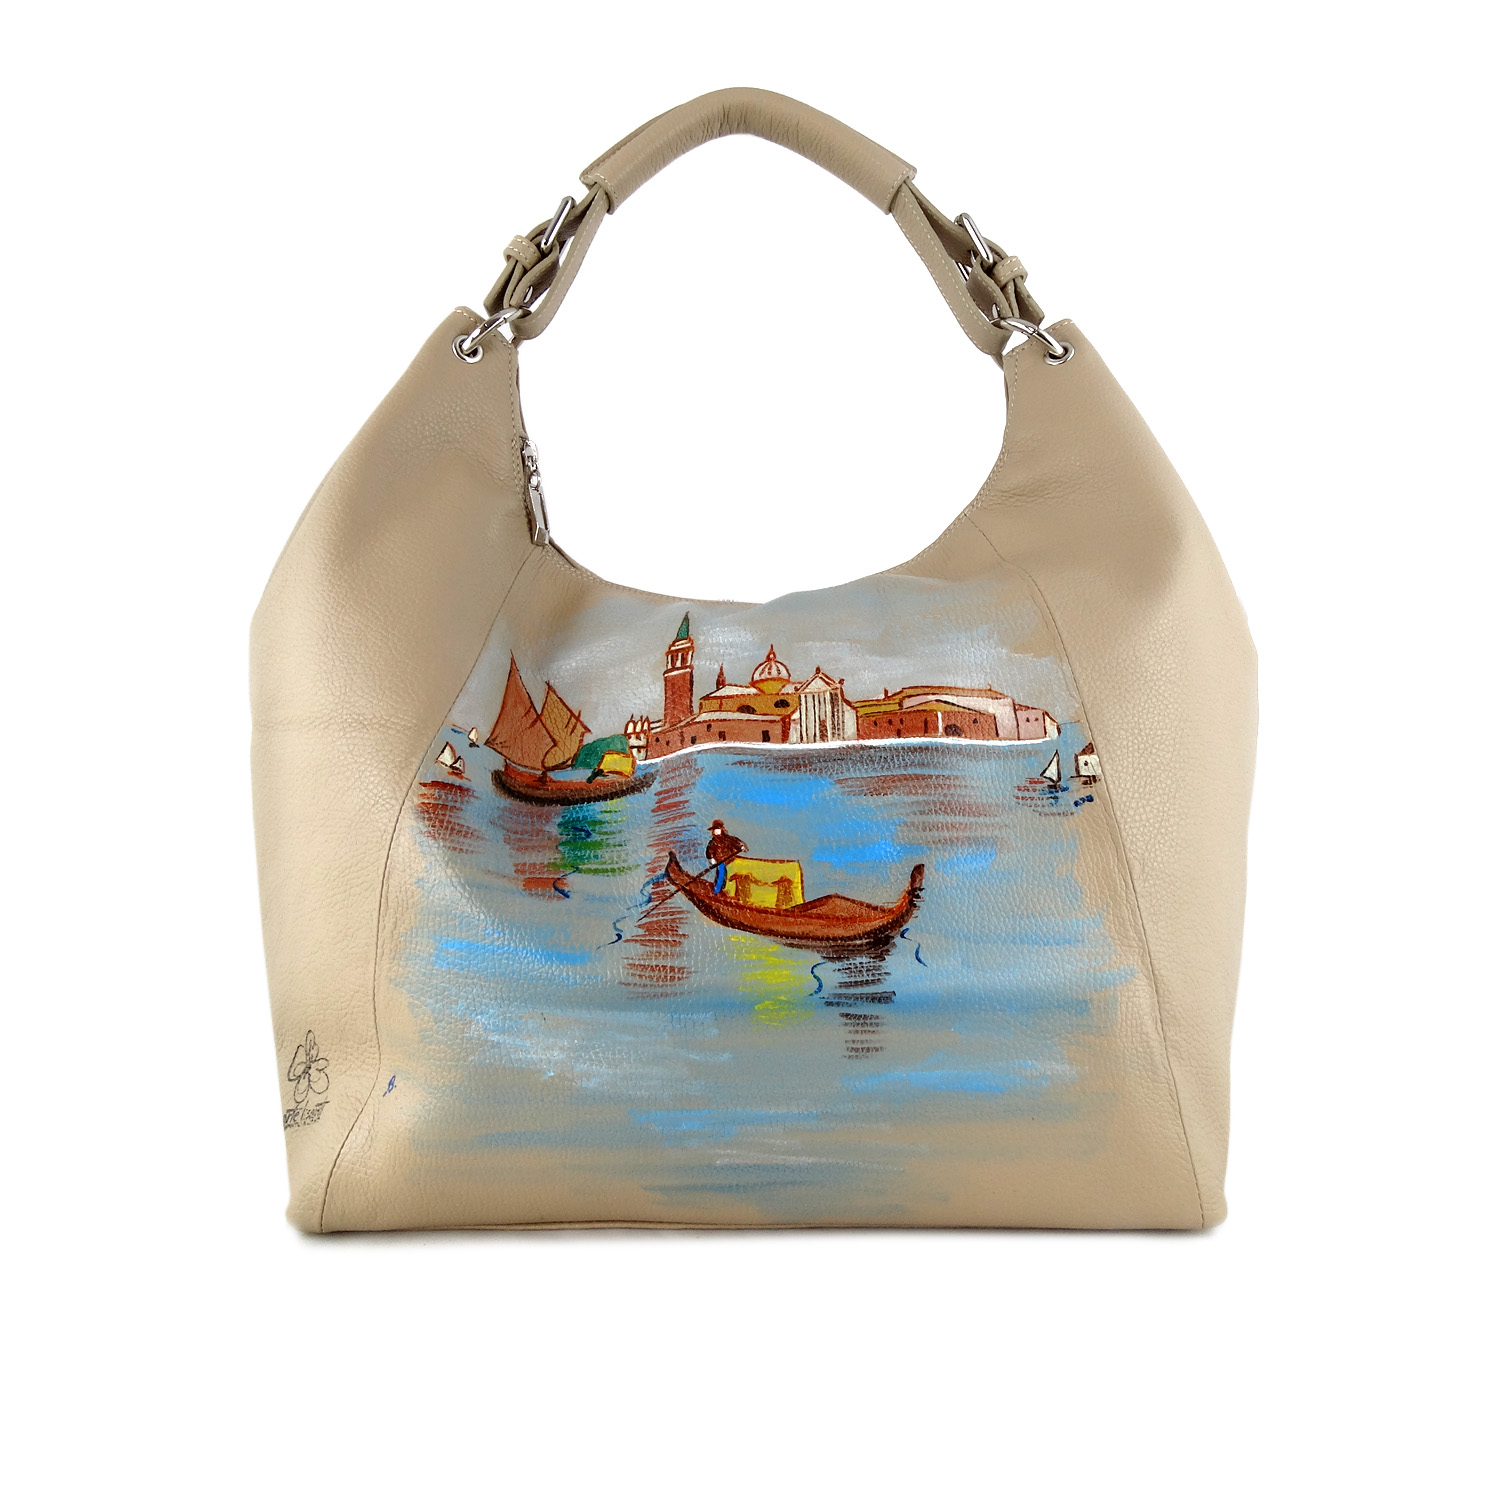 Hand painted bag - Venice